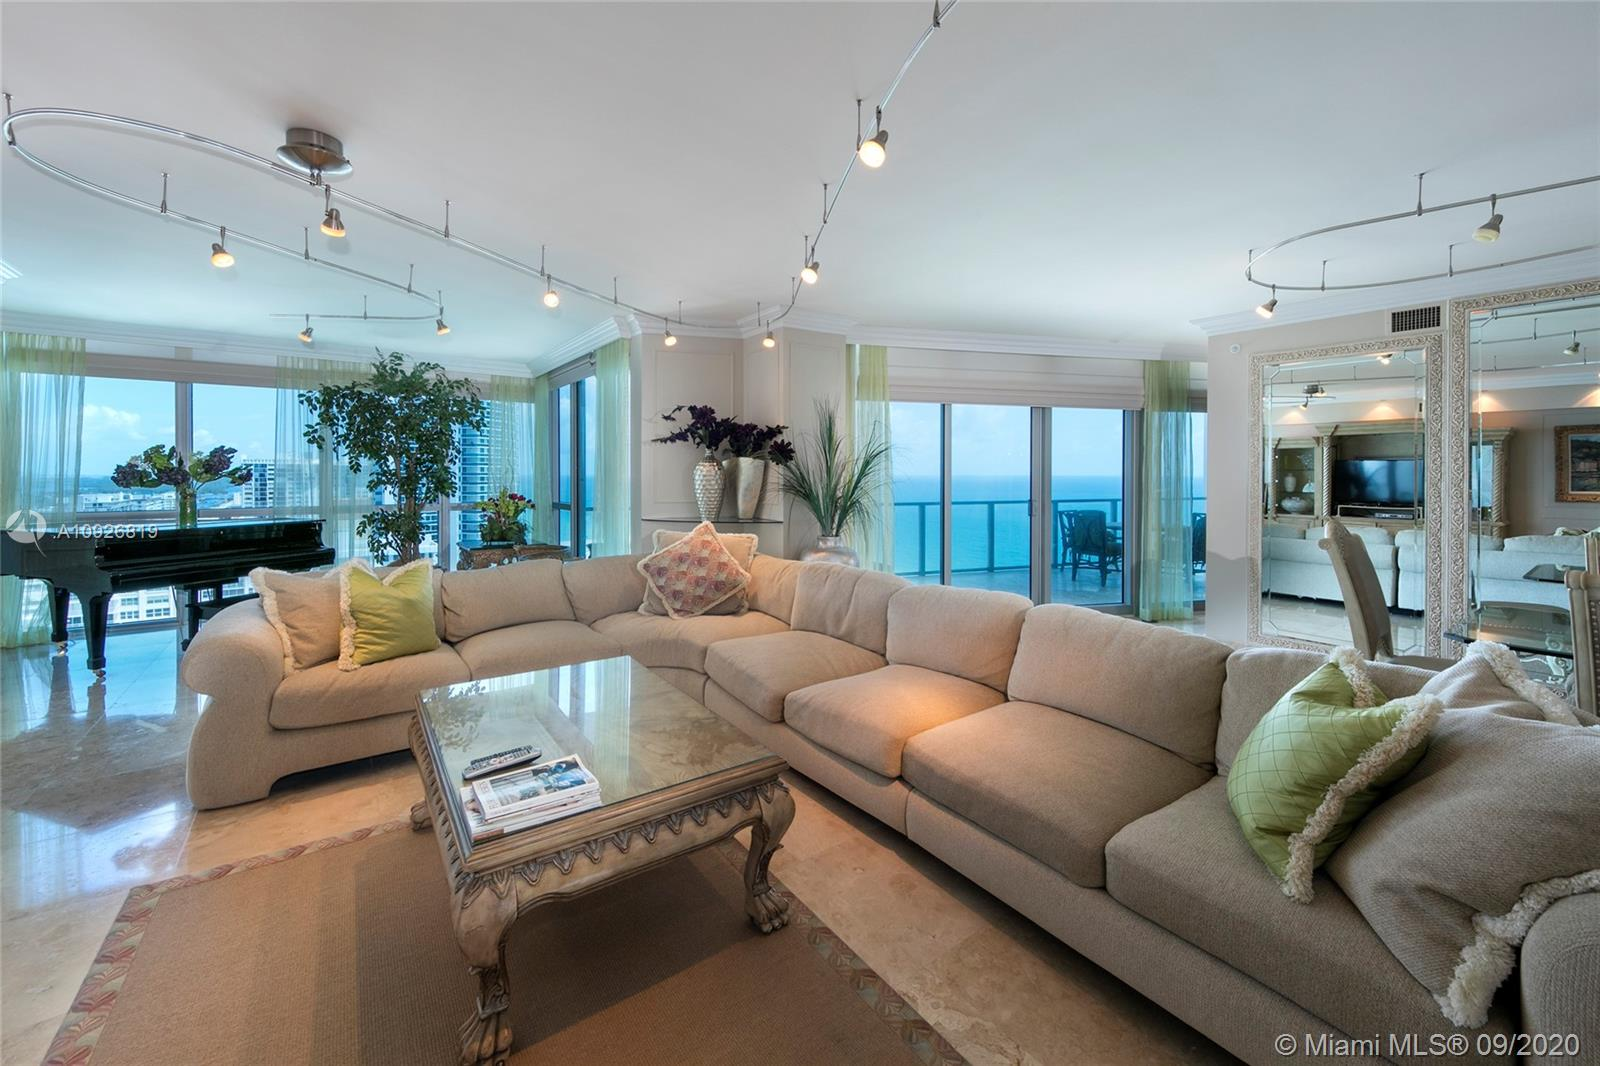 Spacious 3,466sf 4 bed/3.5 bath flow through condo with Ocean & Intracoastal views from every room. No detail has been overlooked. Professionally decorated with all the finer finishes. 2 parking spaces. 5 star amenities.